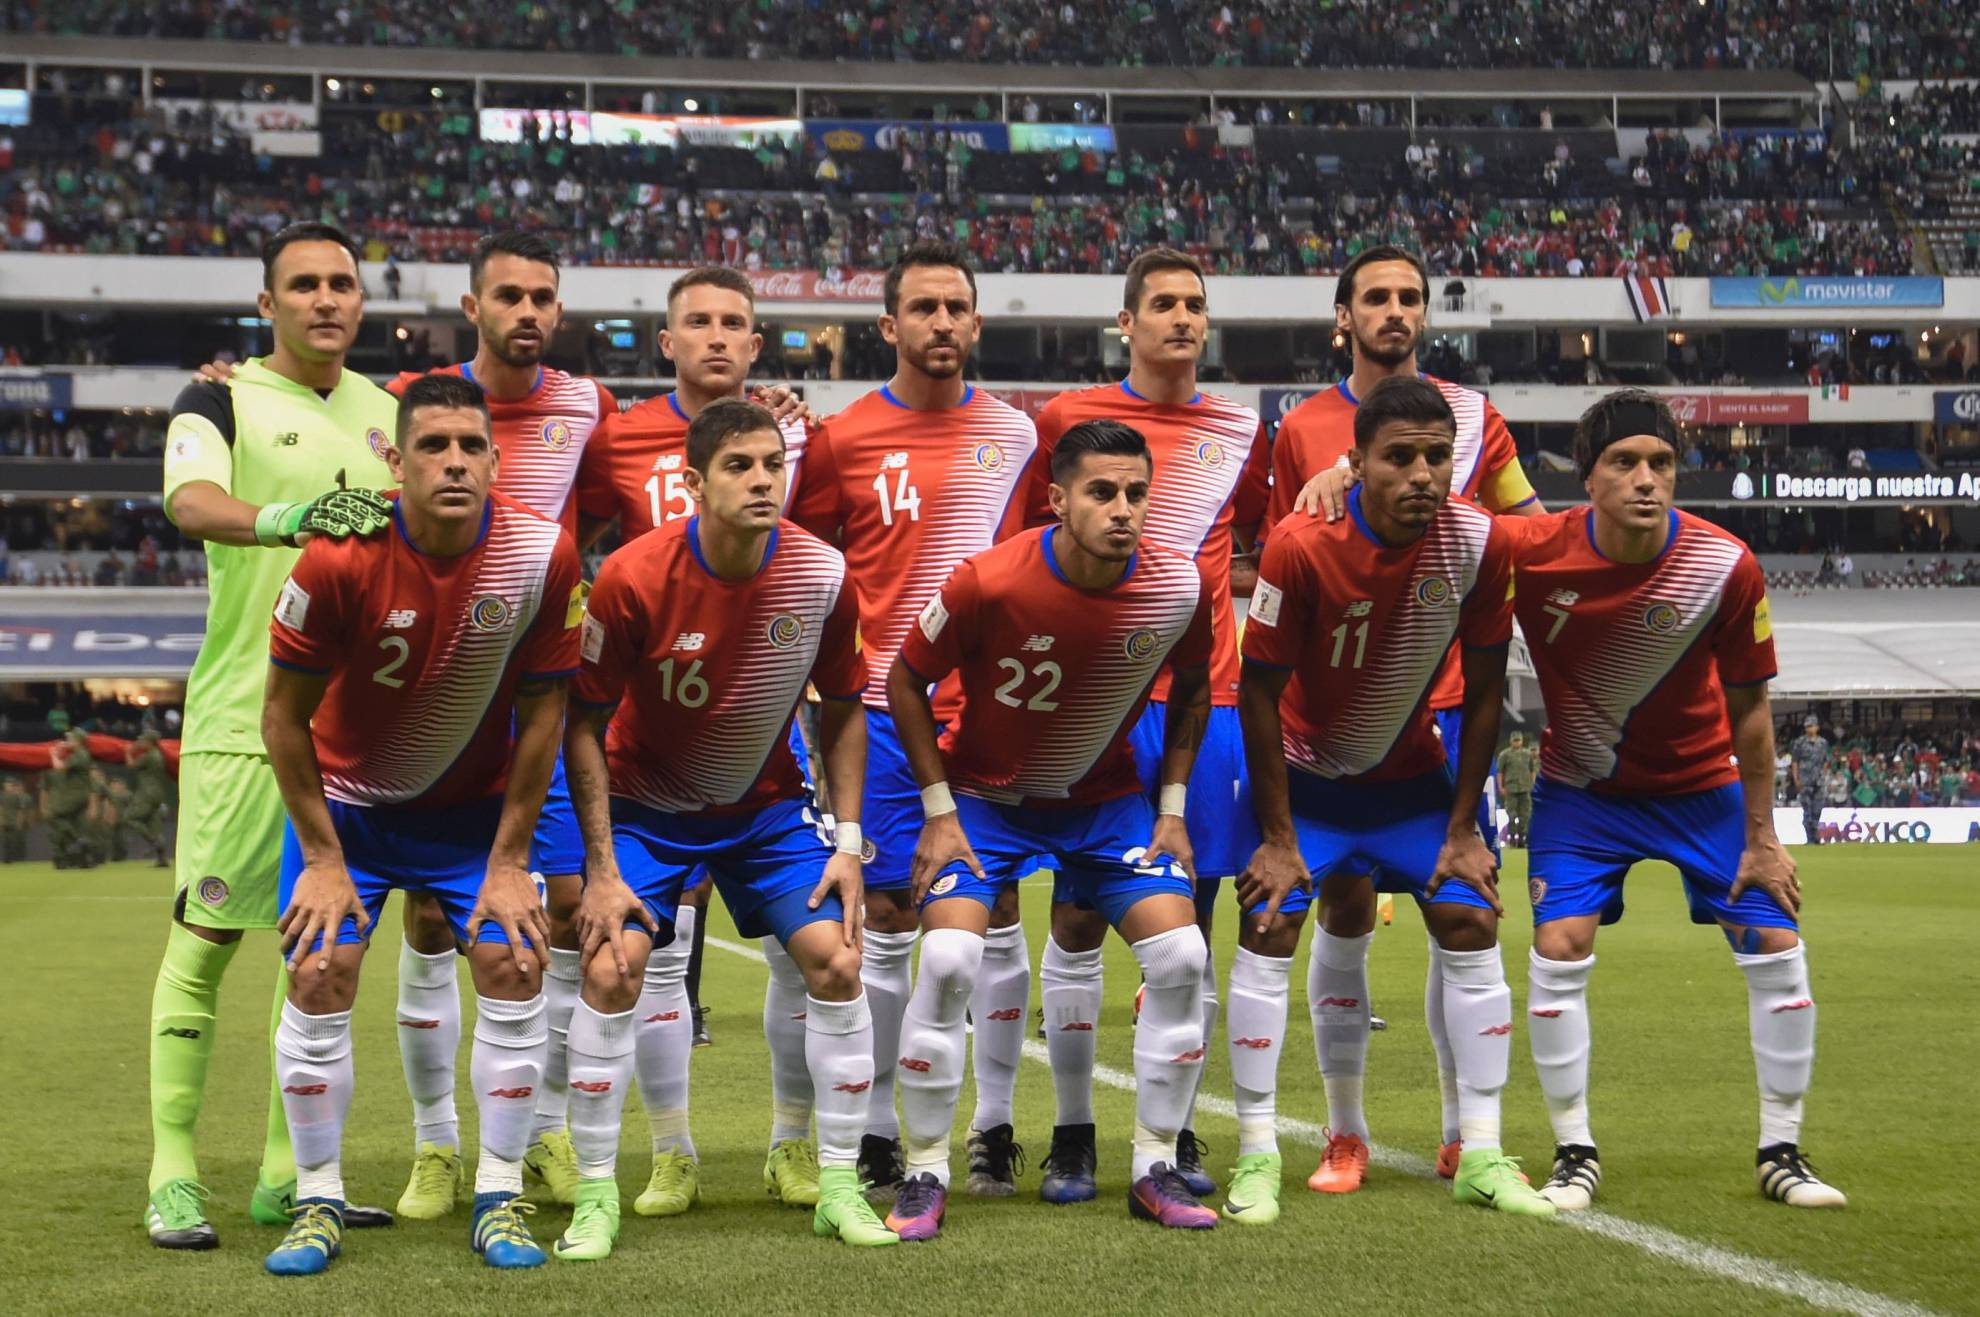 Costa Rican national football team